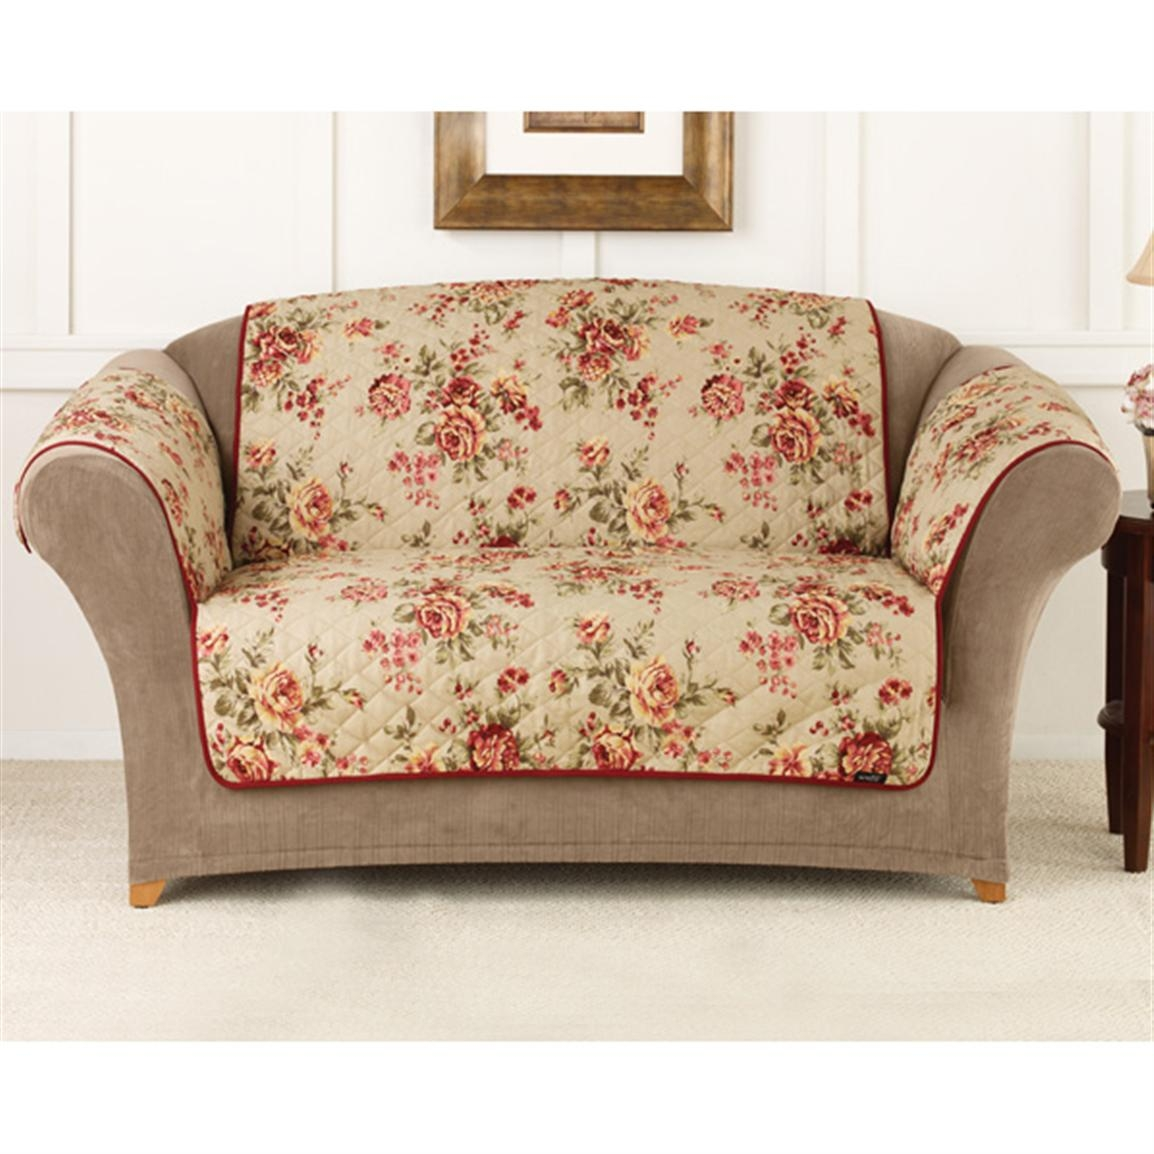 Flower Print Sofa 1970 Floral Sofa Flower Print Couch Suzy Q Pertaining To Chintz Covered Sofas (Image 8 of 15)